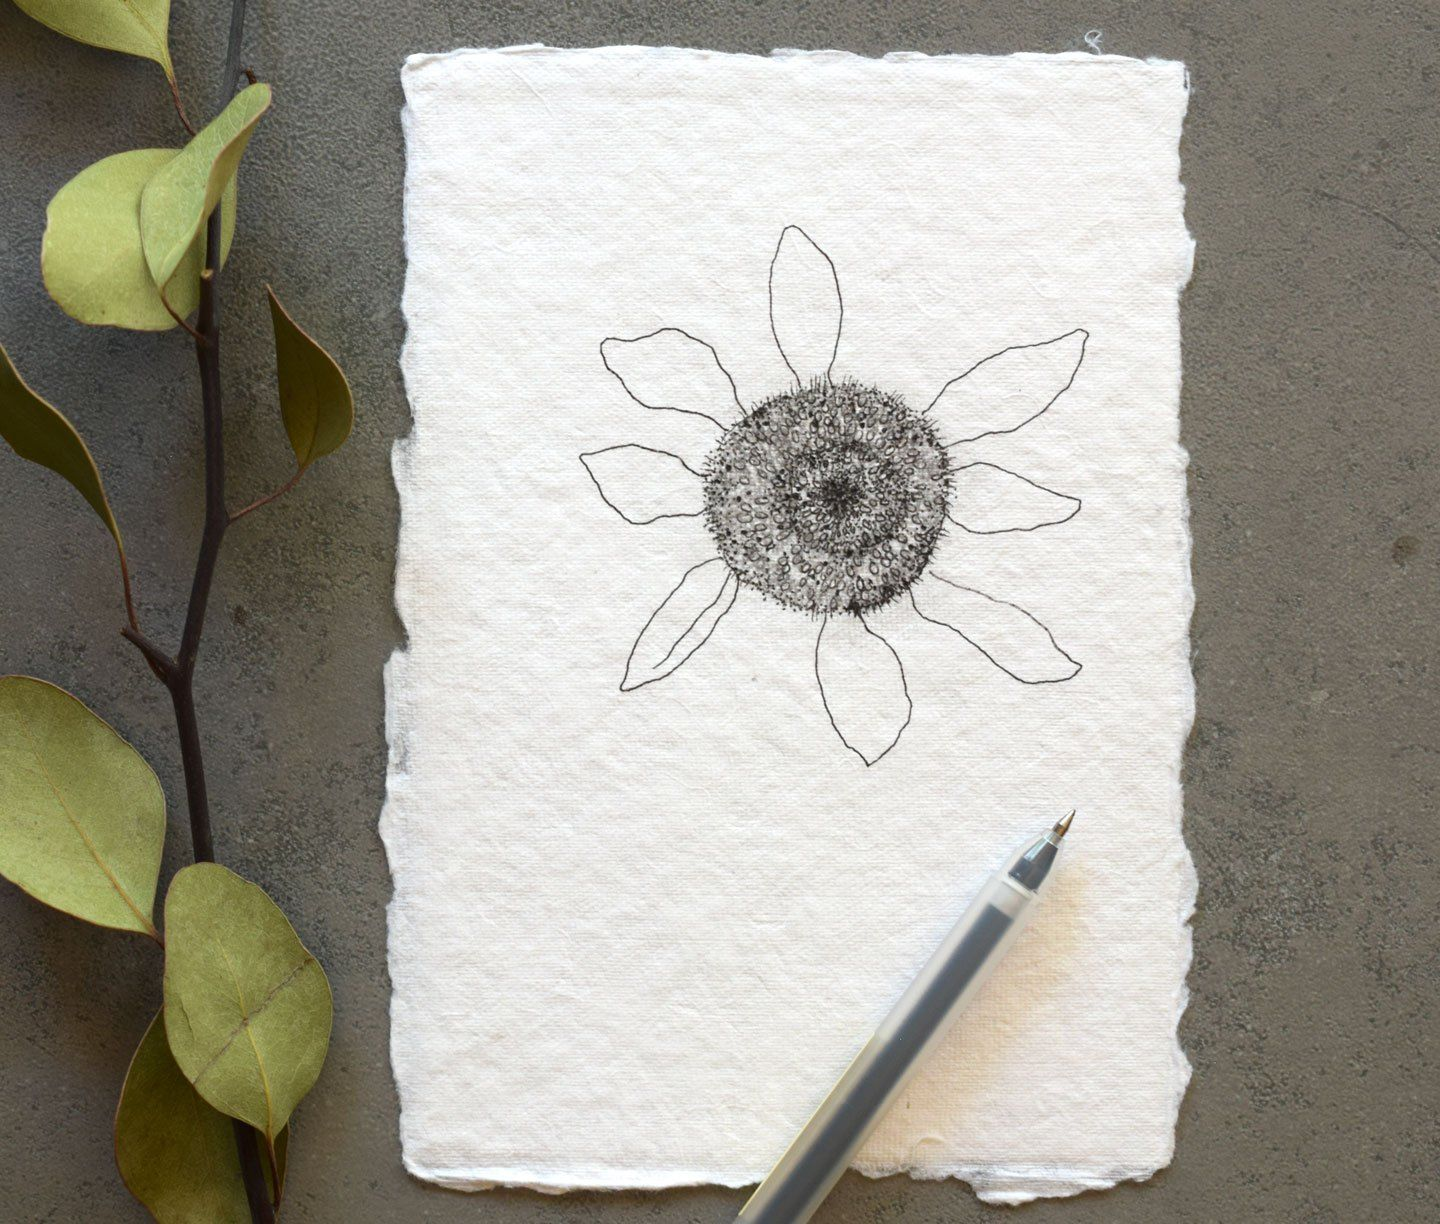 How to Draw Flowers Part 3: Sunflower – The Postman's Knock